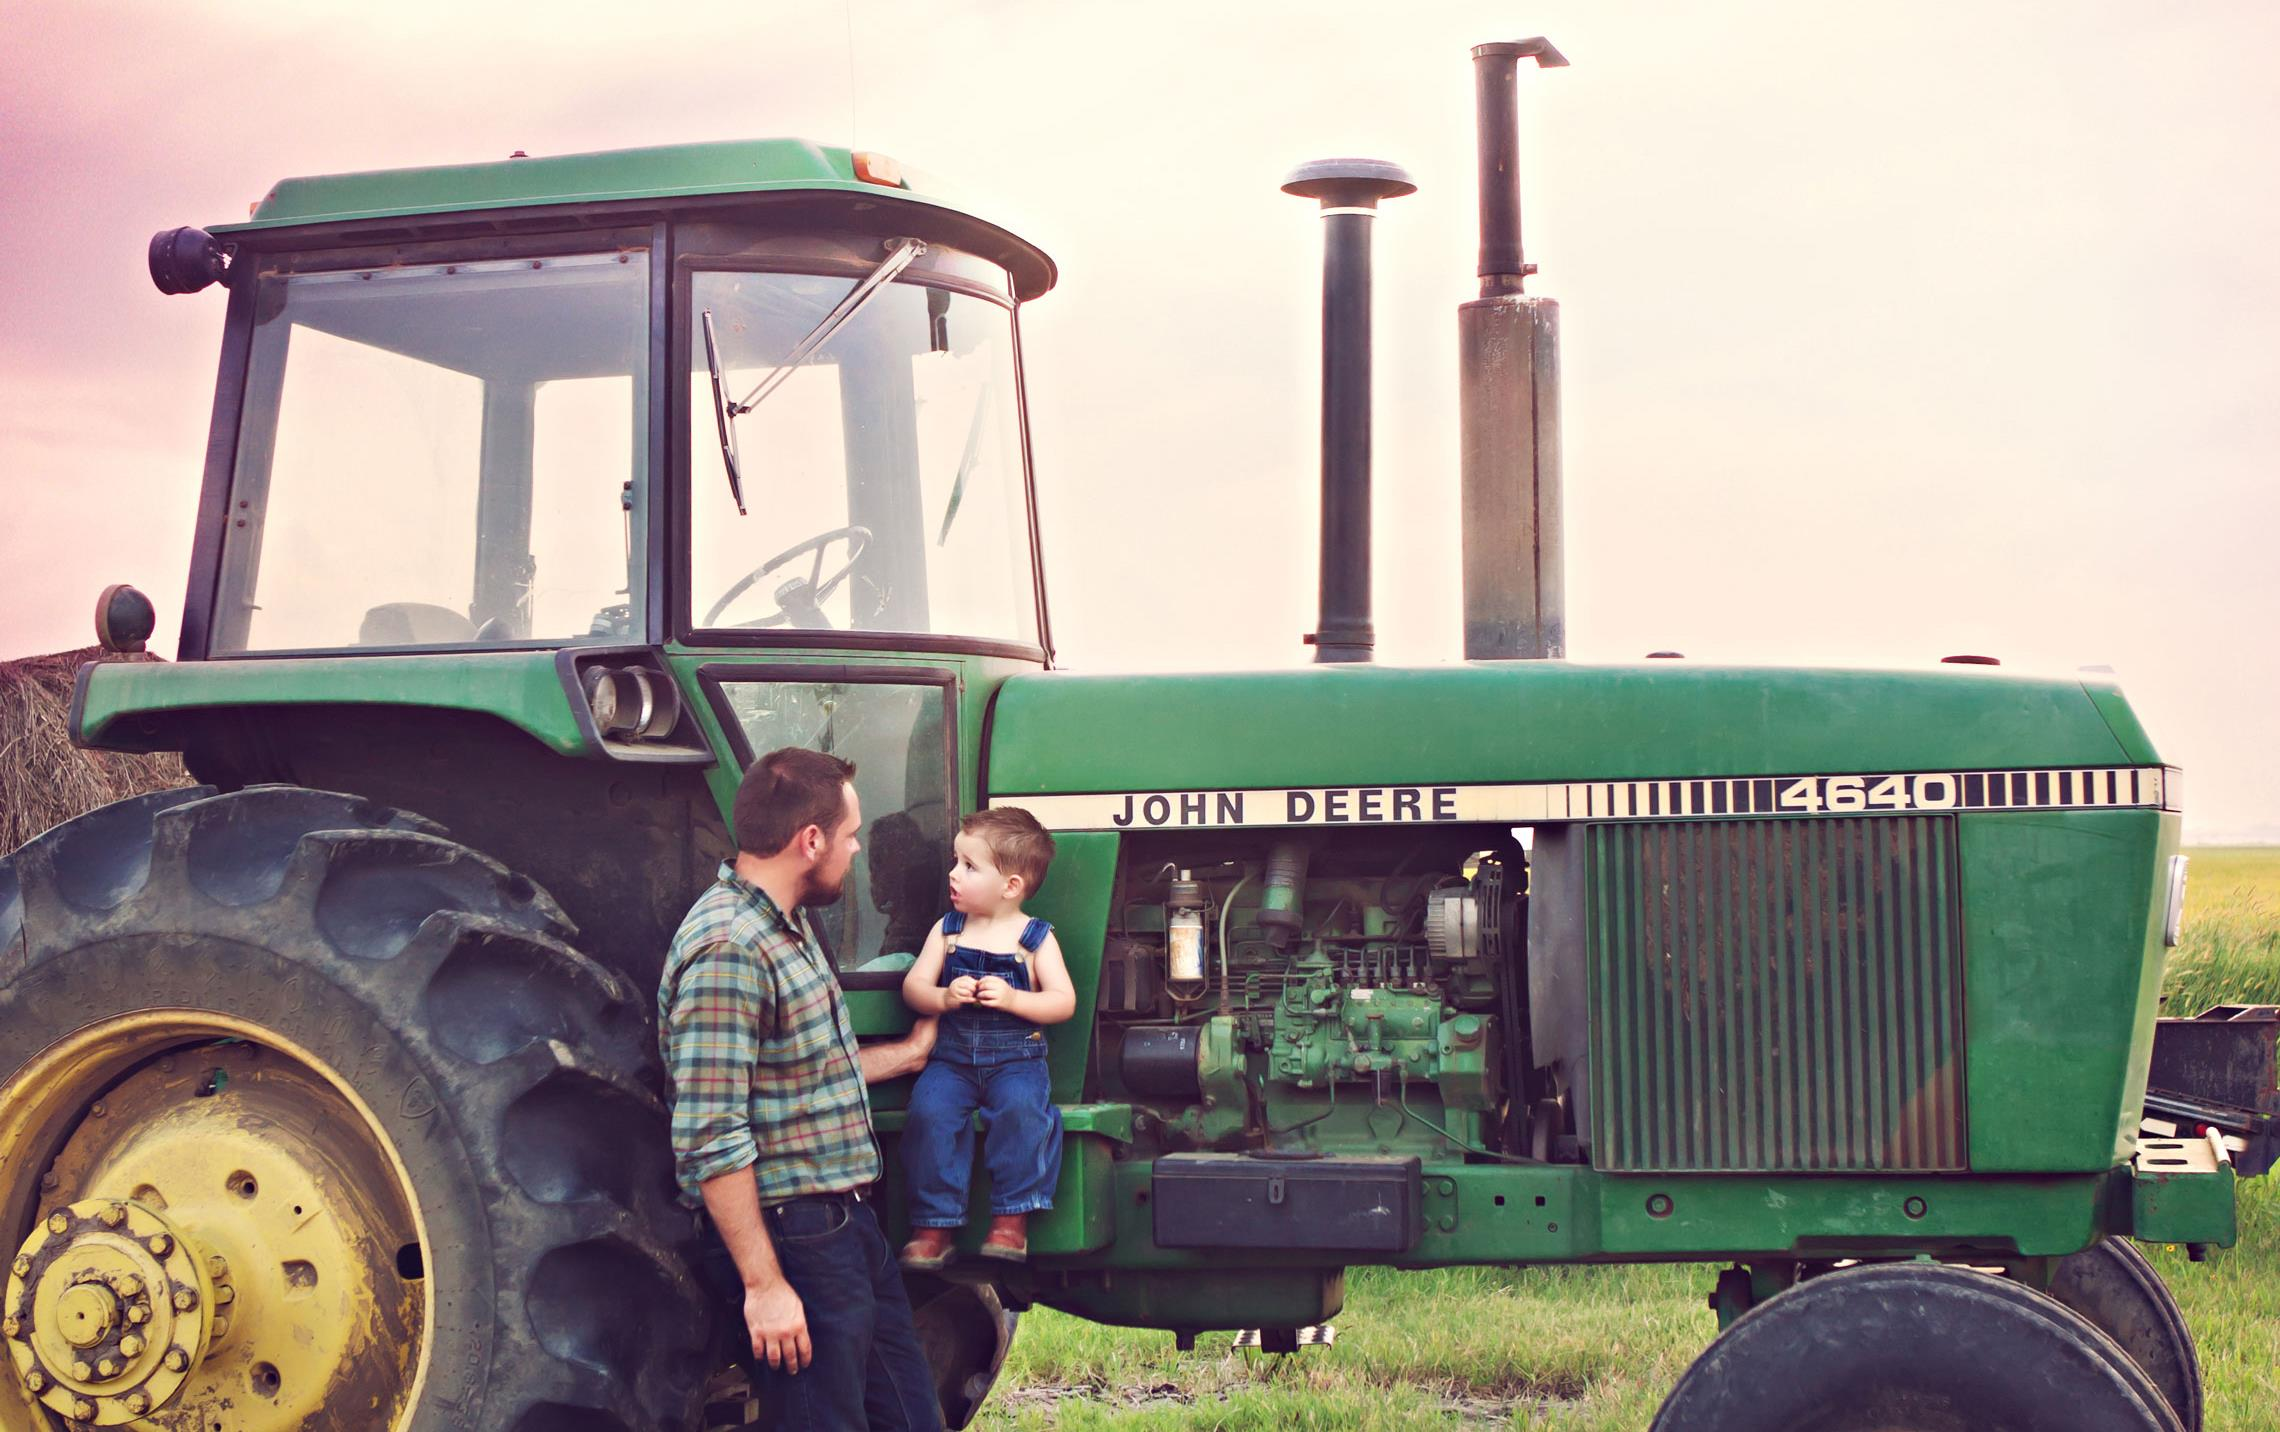 Father holds son wearing overalls up against vintage John Deere tractor